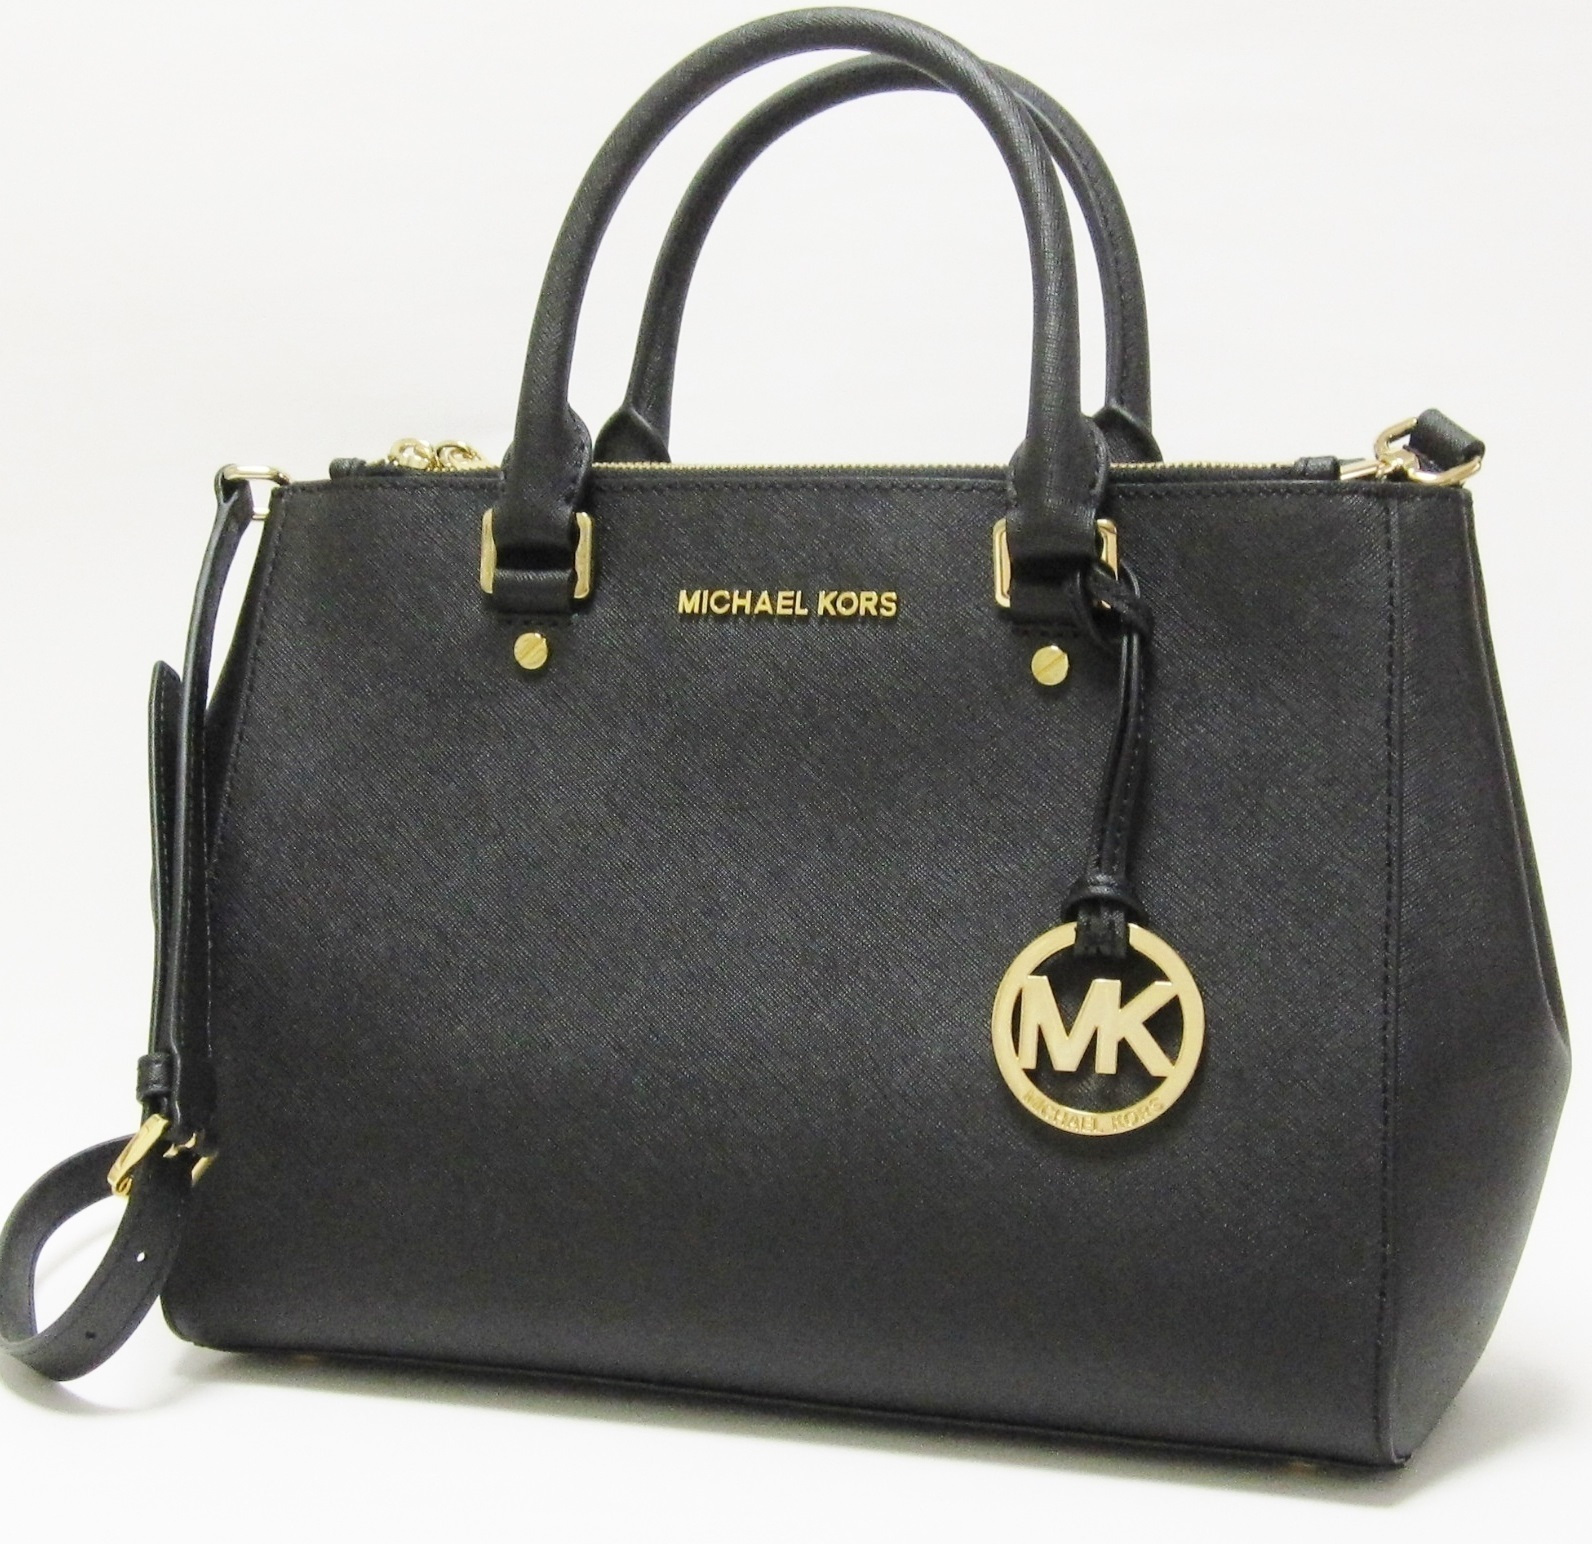 《SALE!》MKゴールドチャームが大人気★Sutton Large Satchel♪